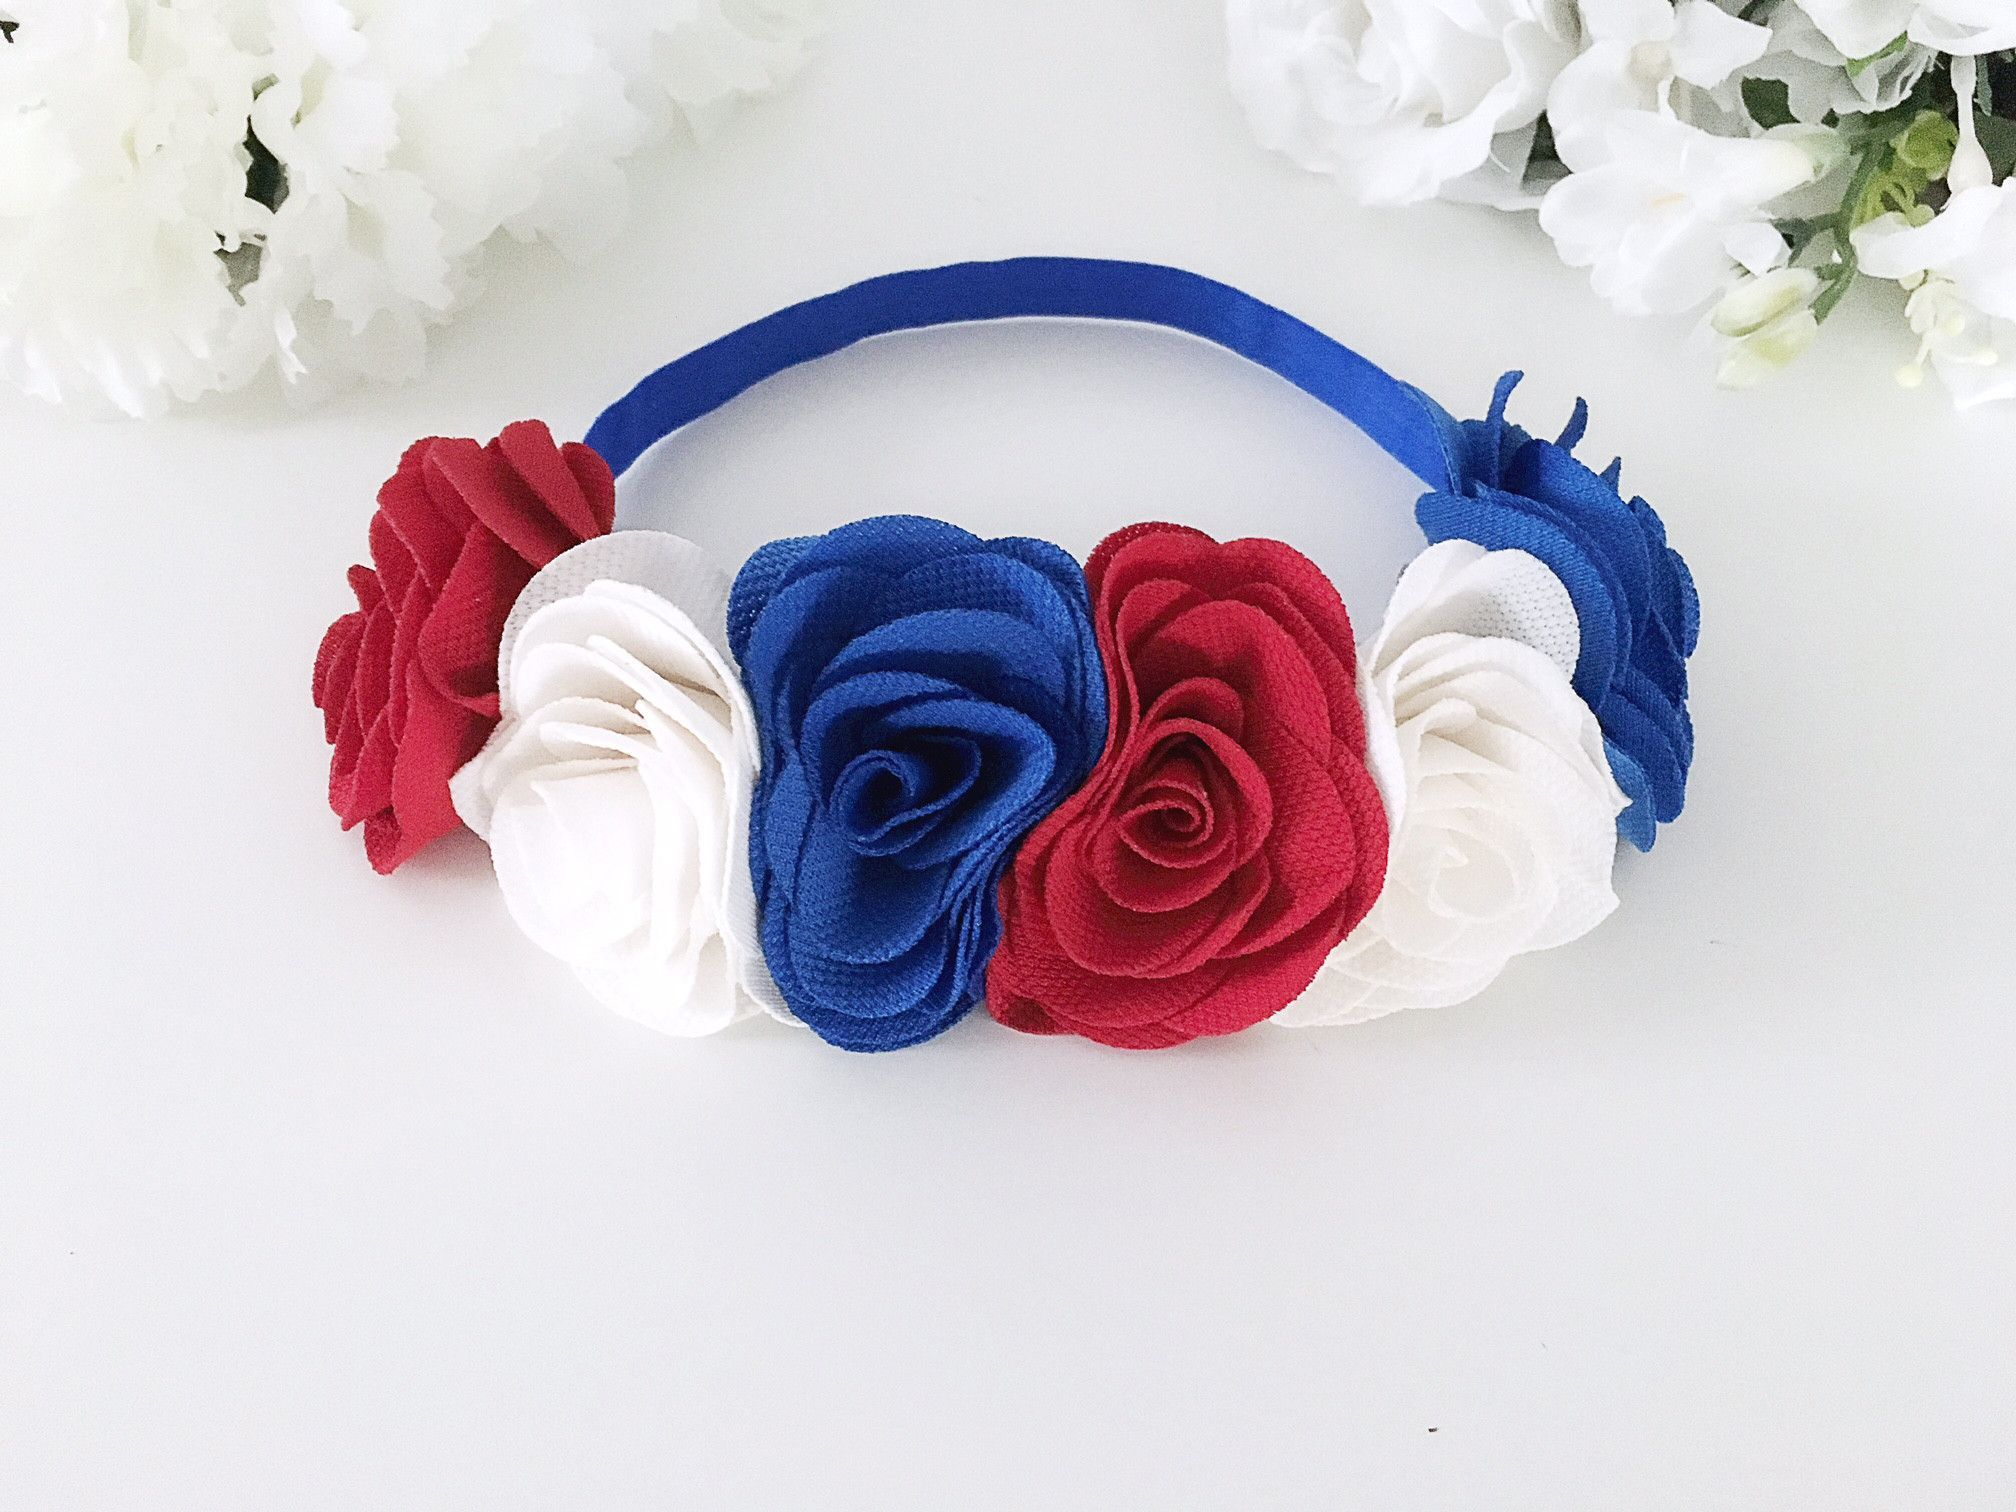 Patriotic flower crown headband products pinterest flower this red white and blue flower crown headband is the perfect adornment for her precious little head this of july this item features adorable patriotic fl izmirmasajfo